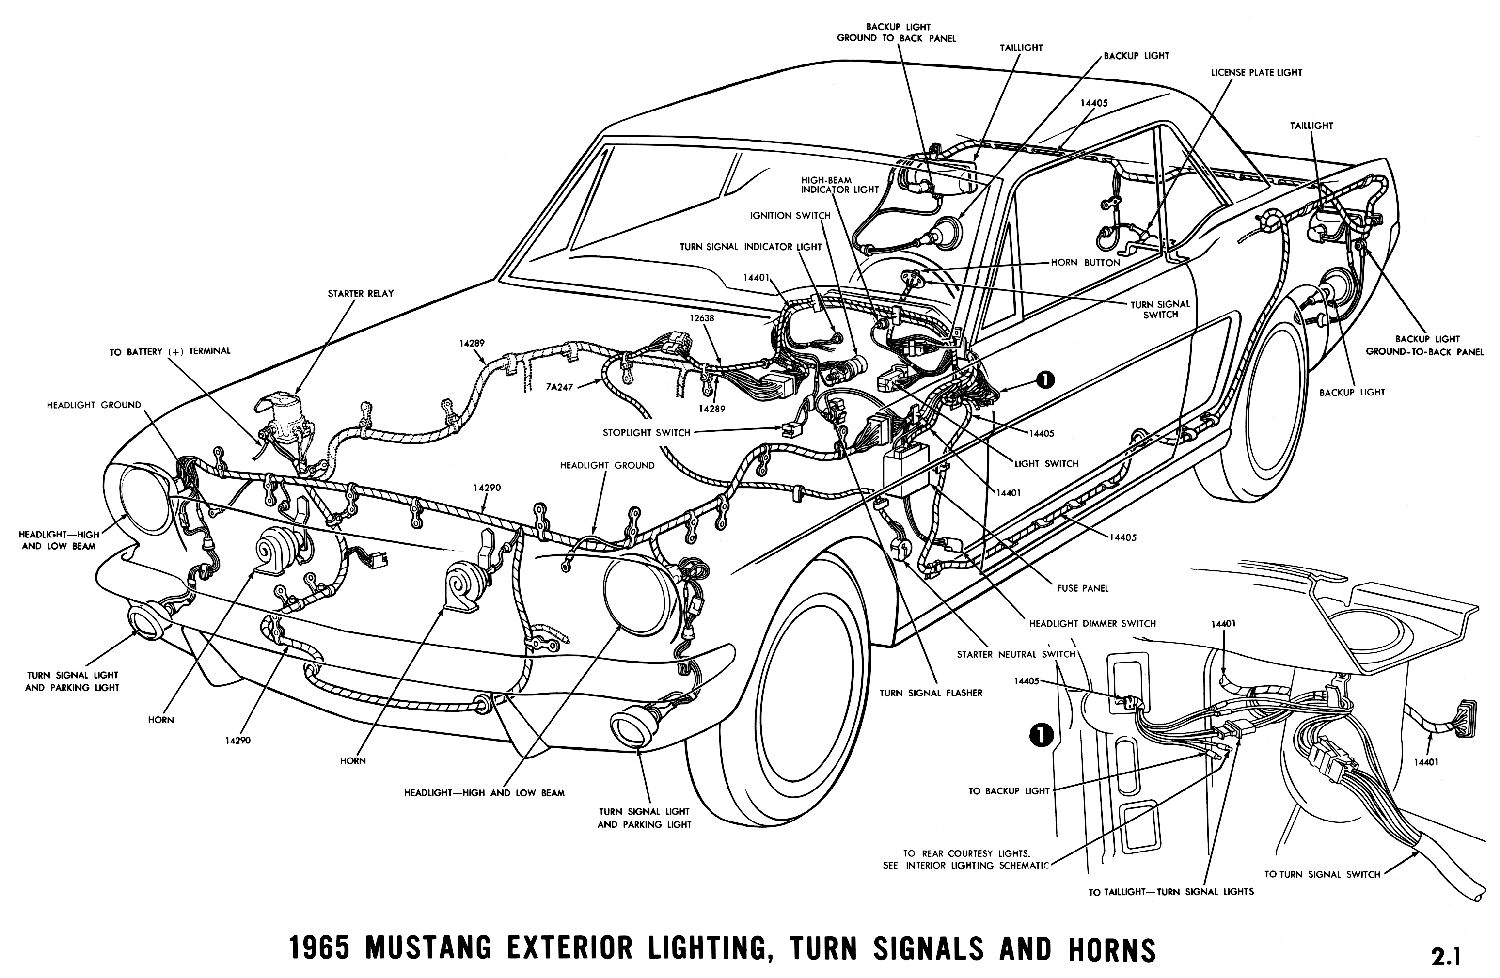 1965d 1965 mustang wiring diagrams average joe restoration 1967 mustang turn signal wiring diagram at soozxer.org